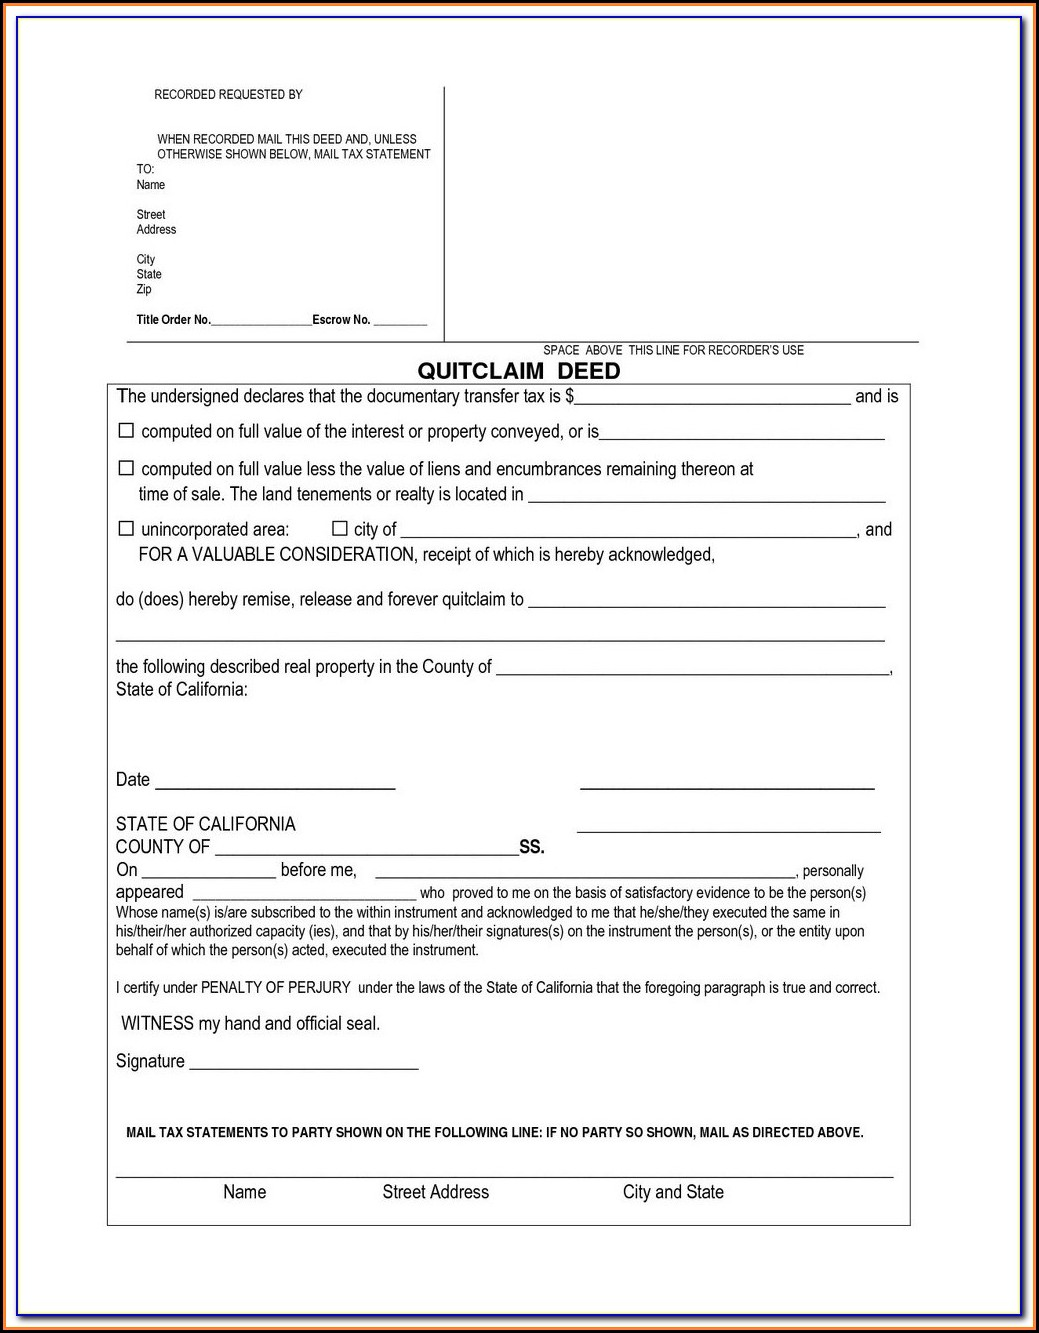 Quit Deed Claim Form California